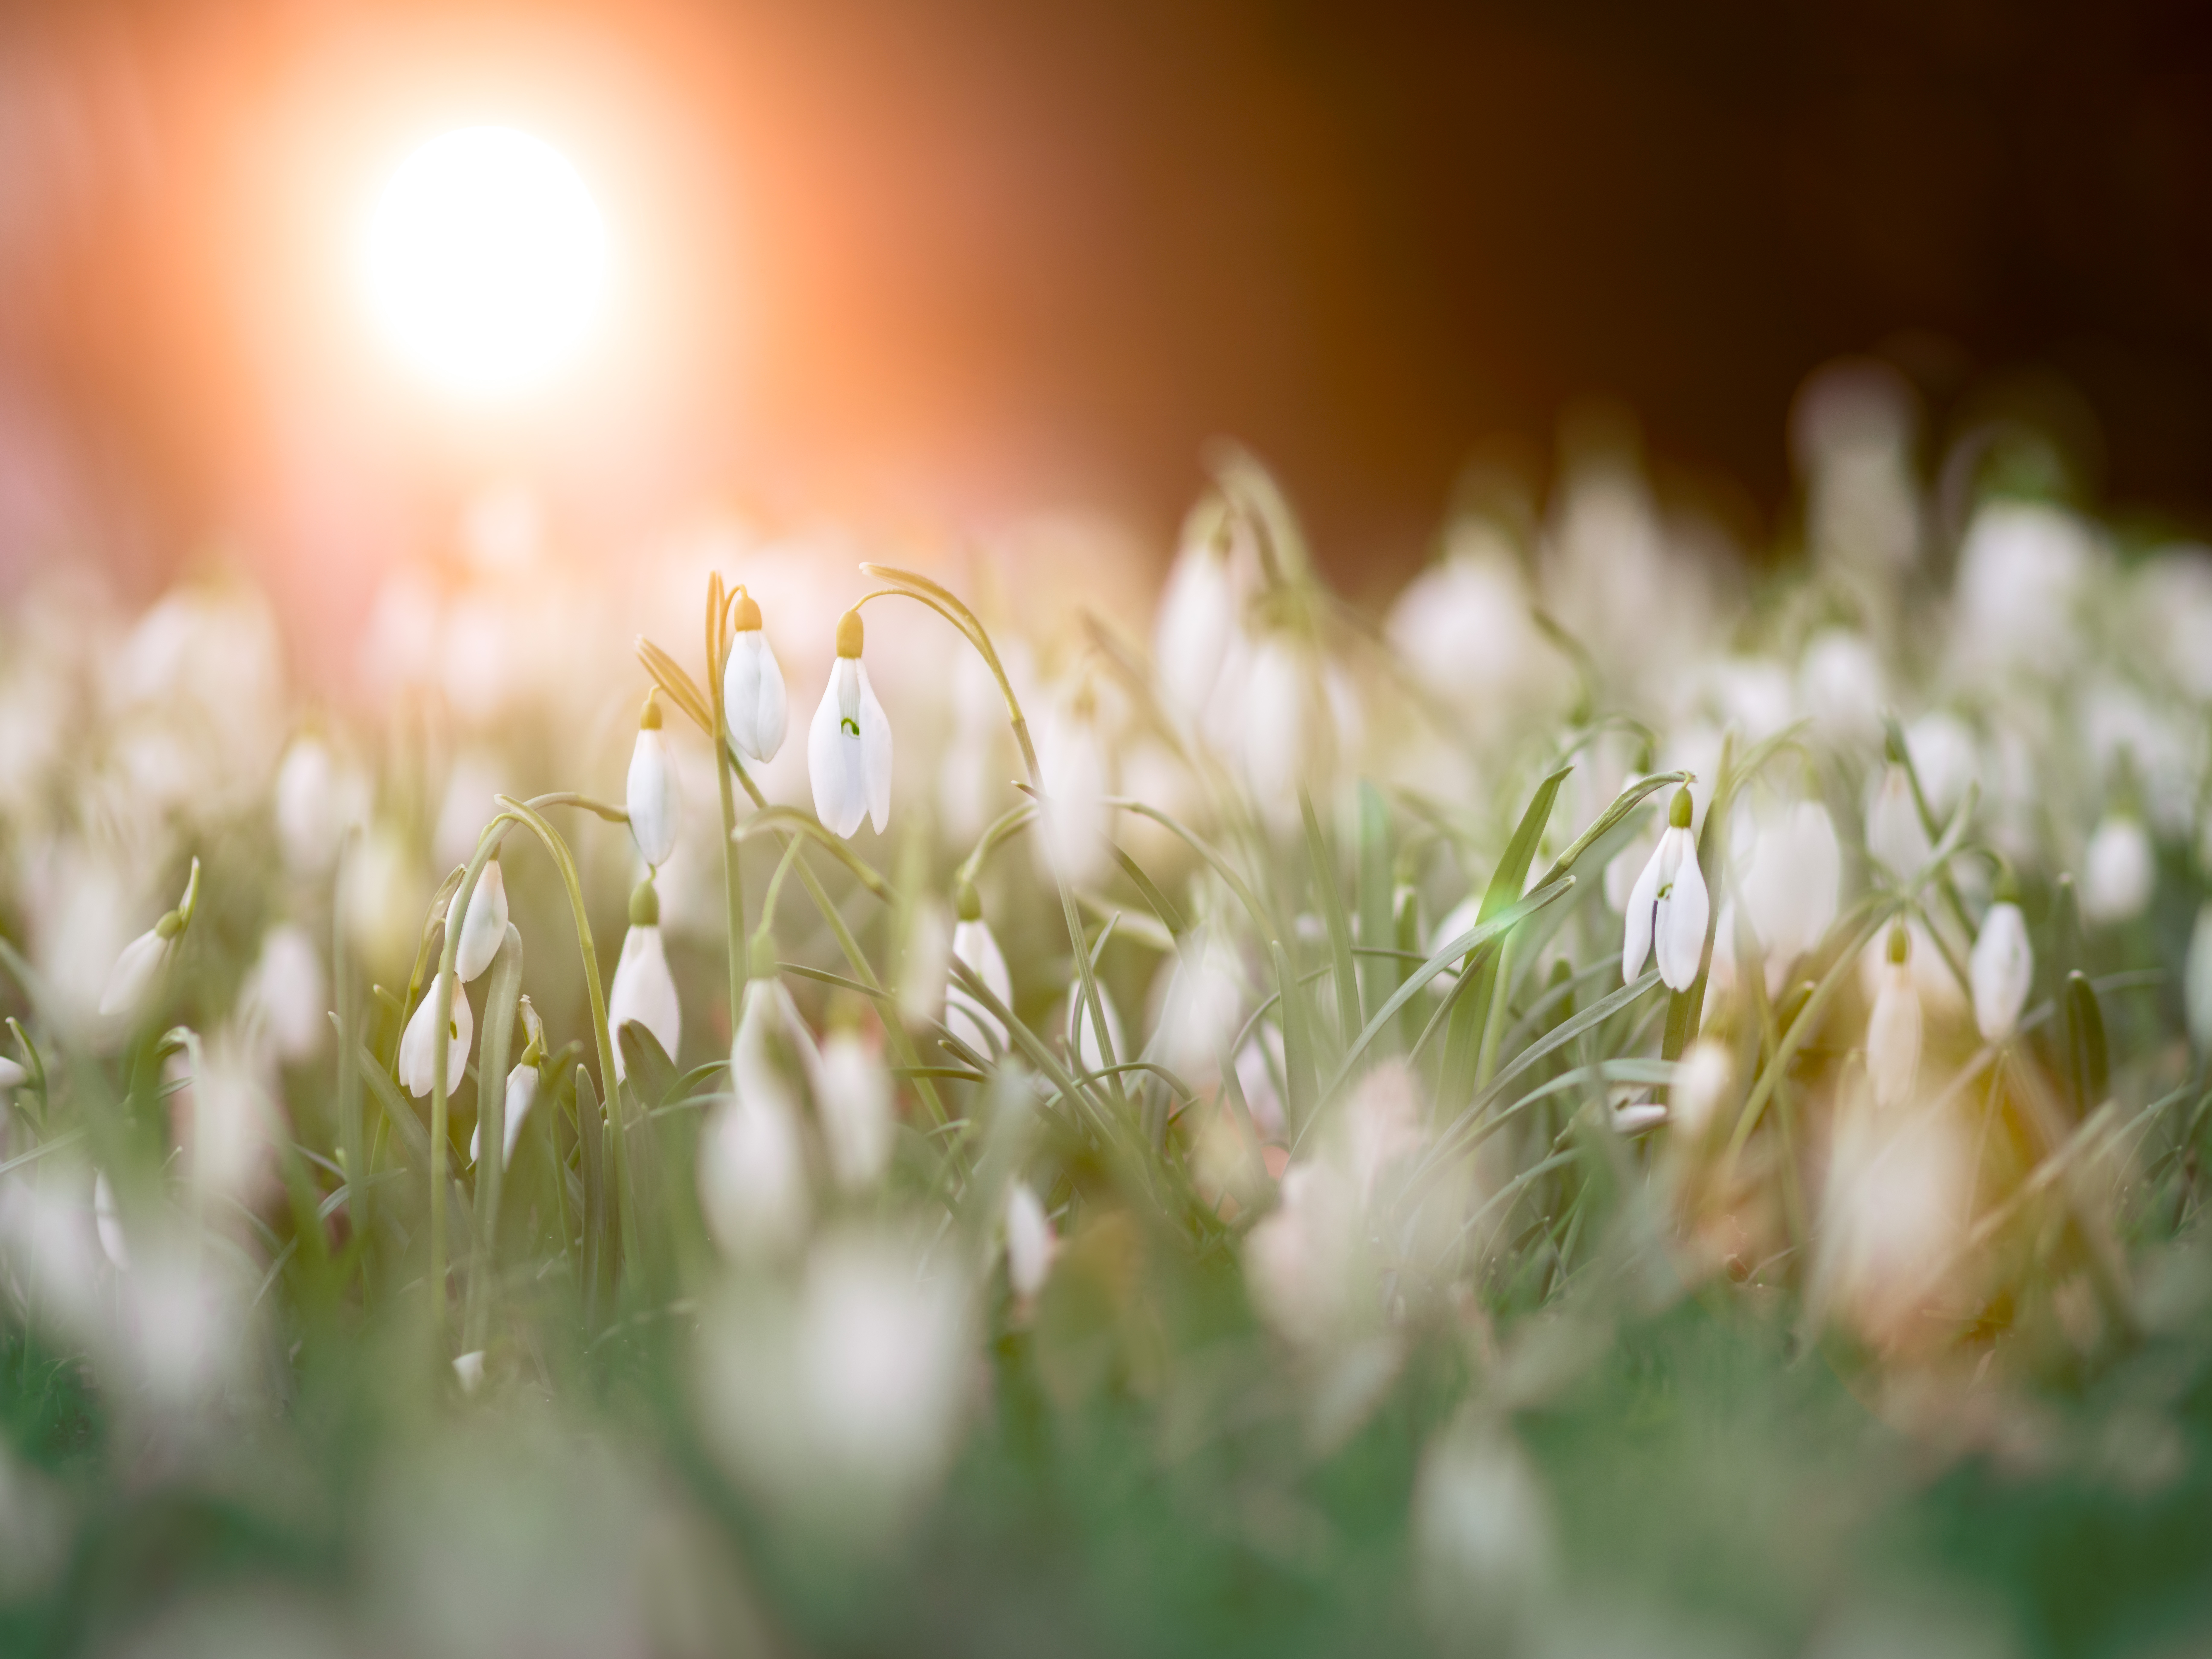 Sun Wallpaper Hd Close Up Photo Of A Bed Of White Flowers 183 Free Stock Photo